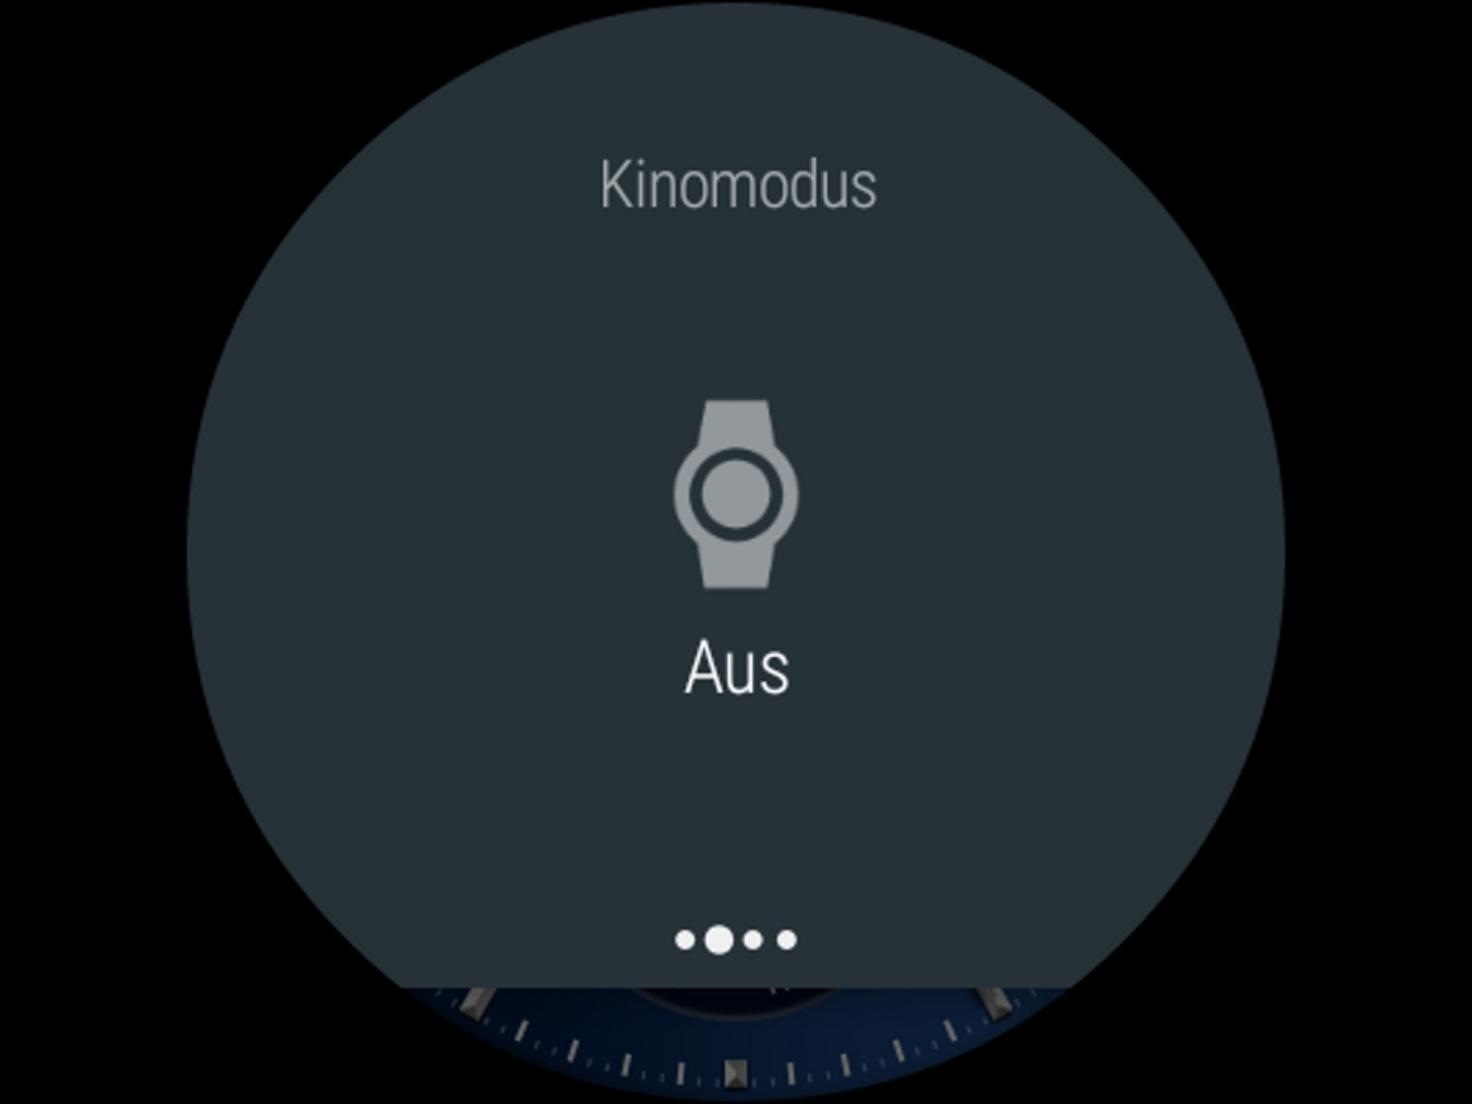 Android Wear Kinomodus